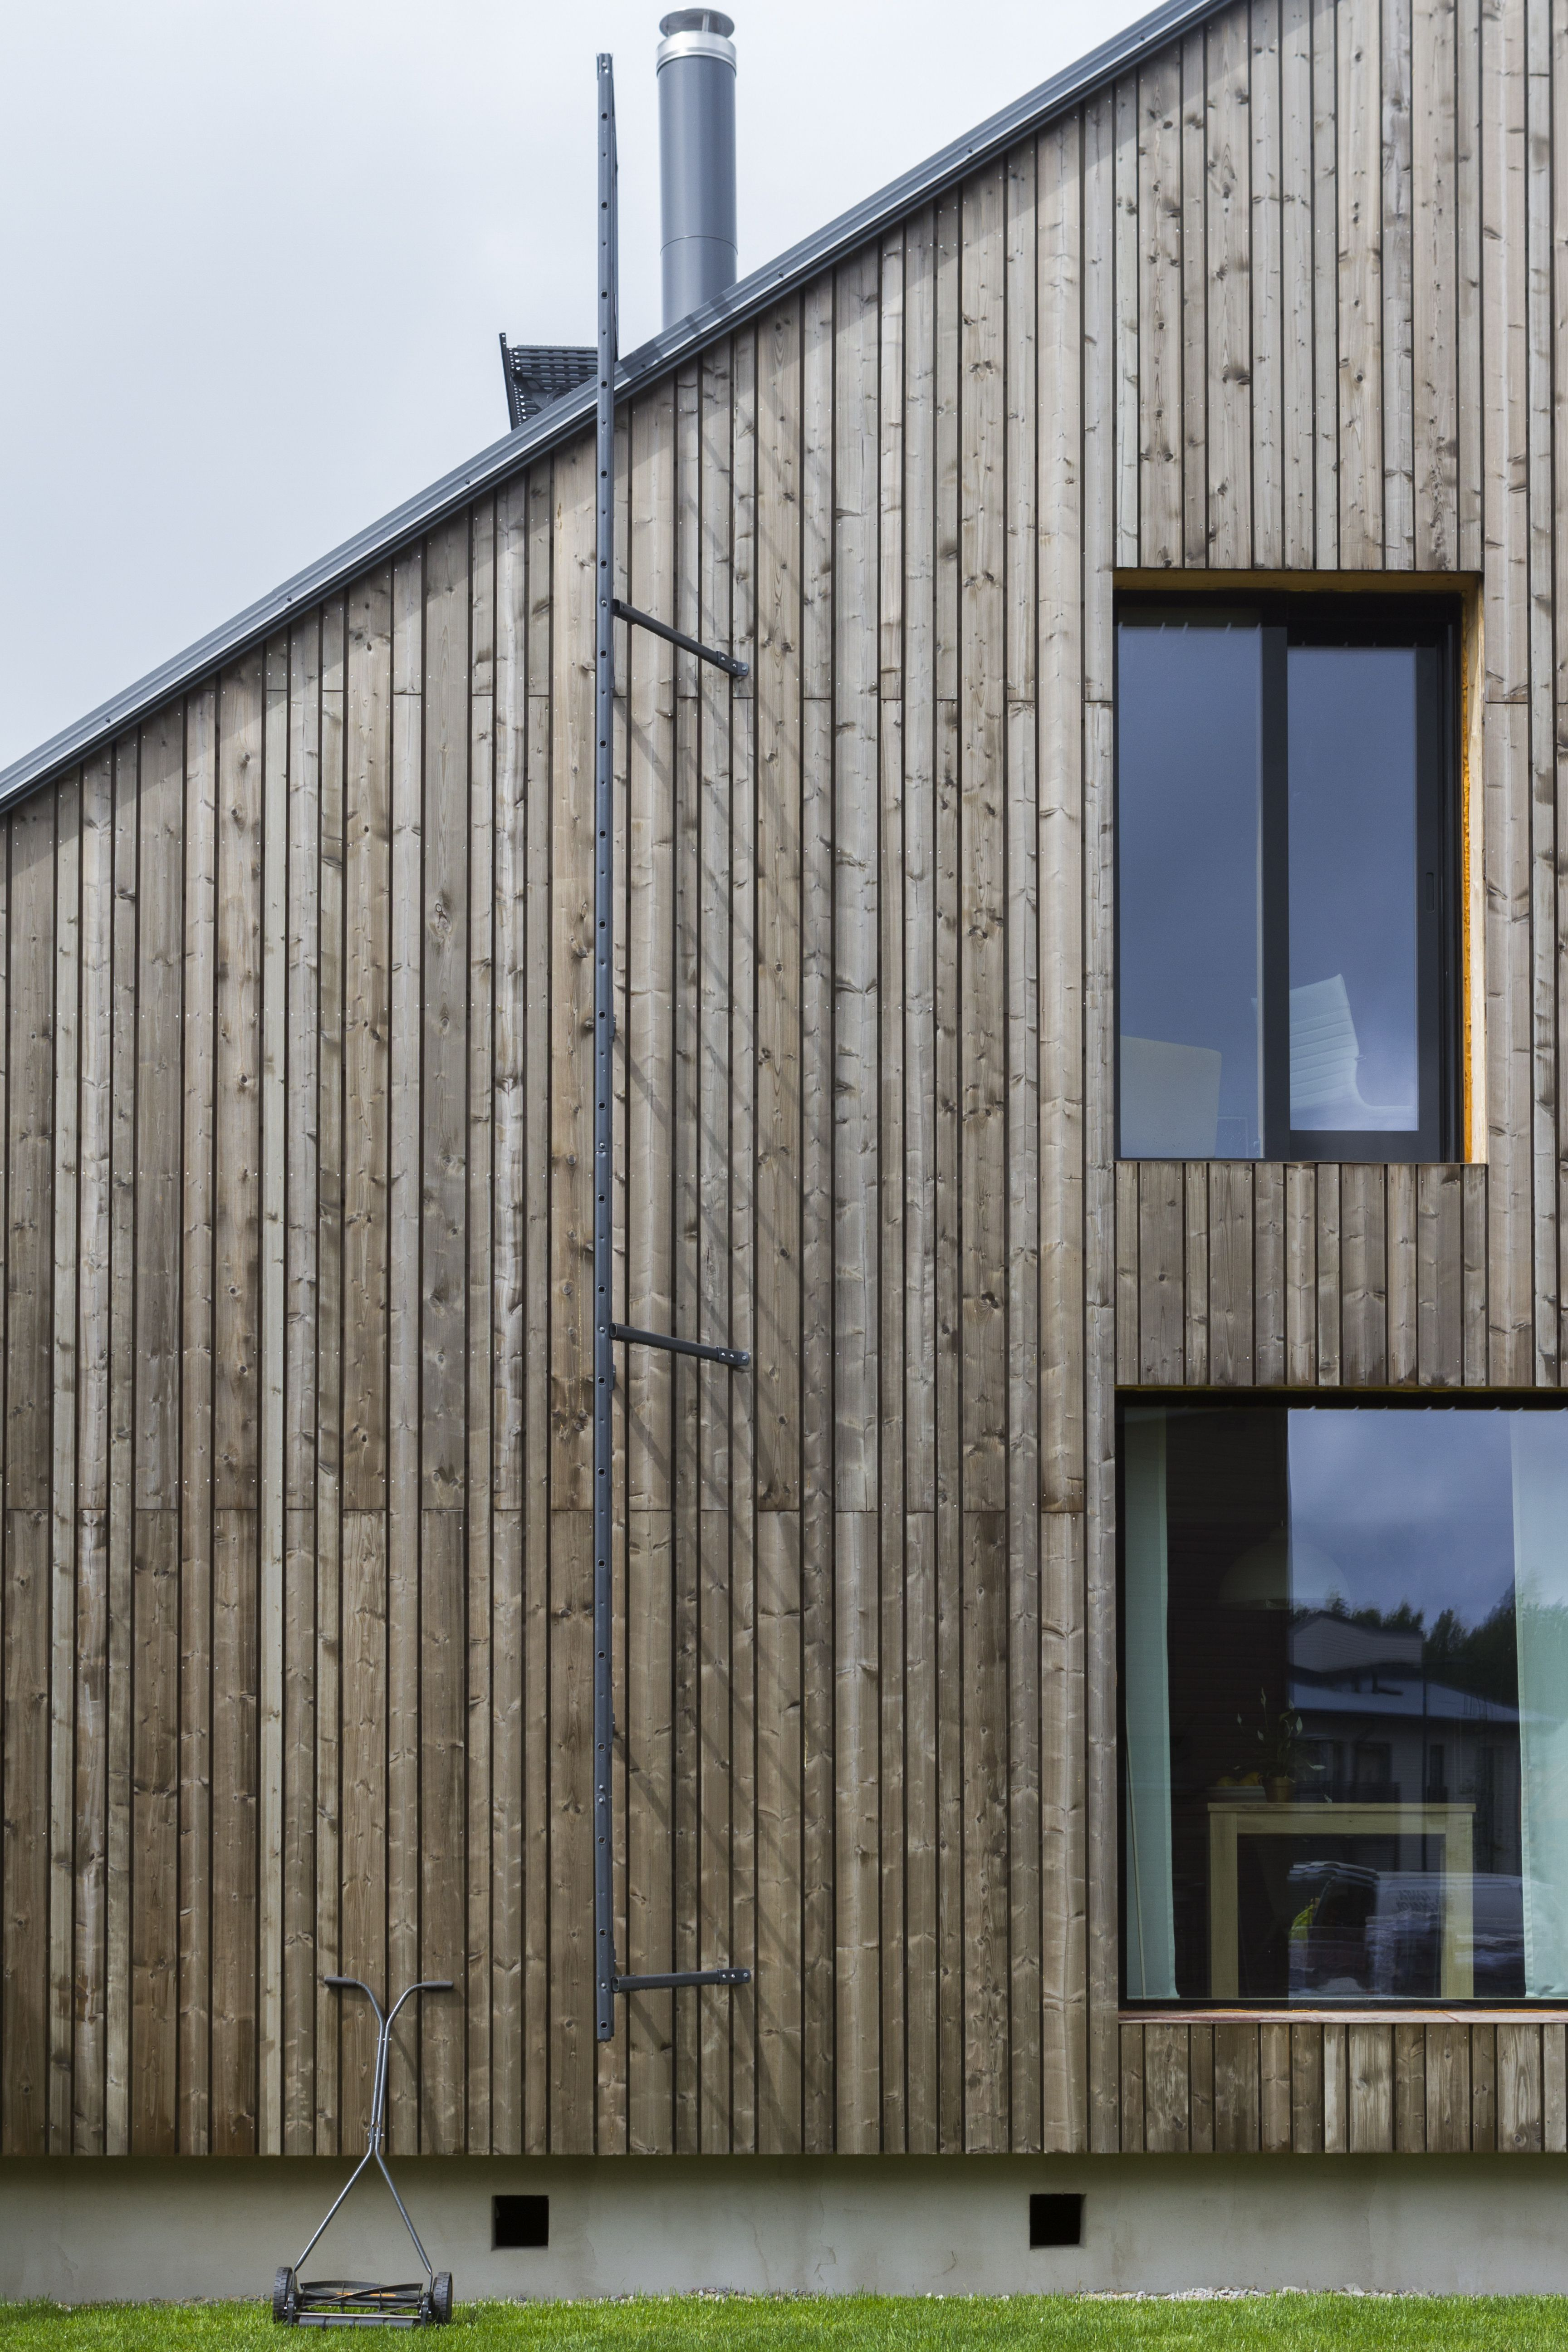 Massivholzhaus Honka Exterior Cladding Spruce That Has Been Treated With Iron Vitriol